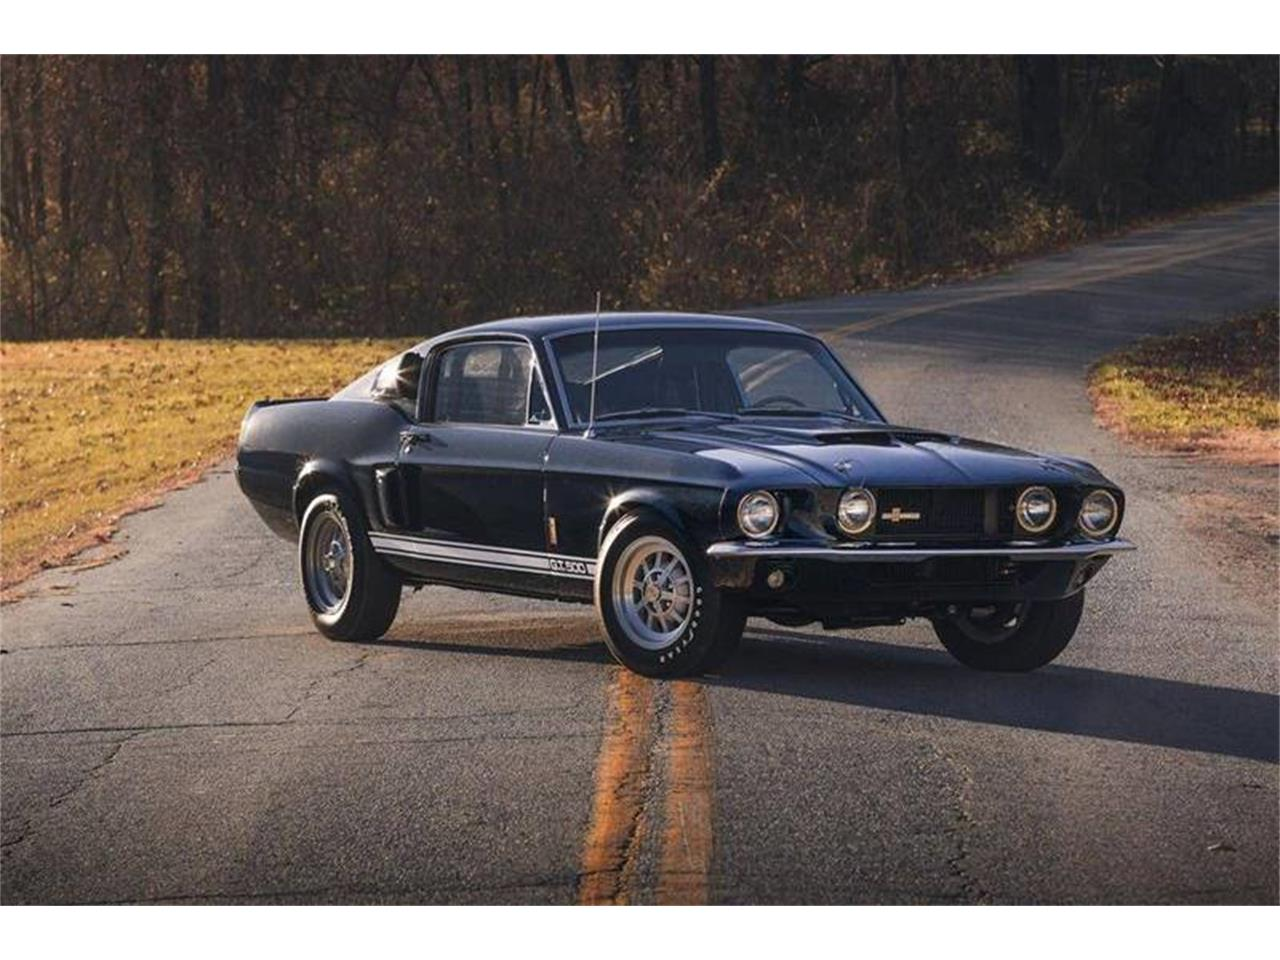 Large picture of 67 gt500 mv9v